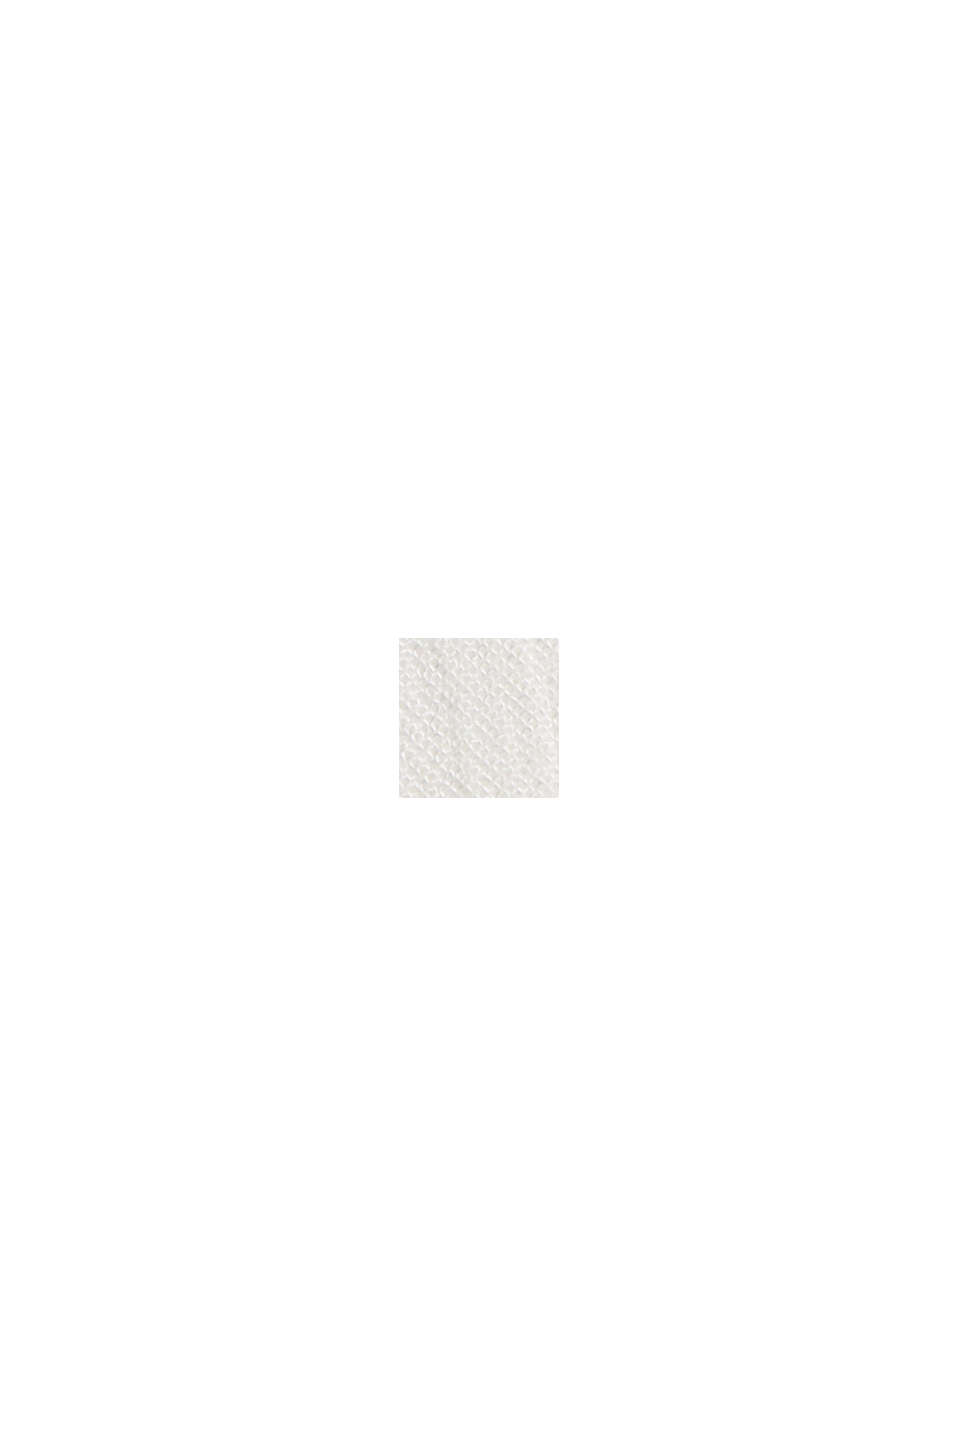 Blouse top with broderie anglaise, LENZING™ ECOVERO™, OFF WHITE, swatch